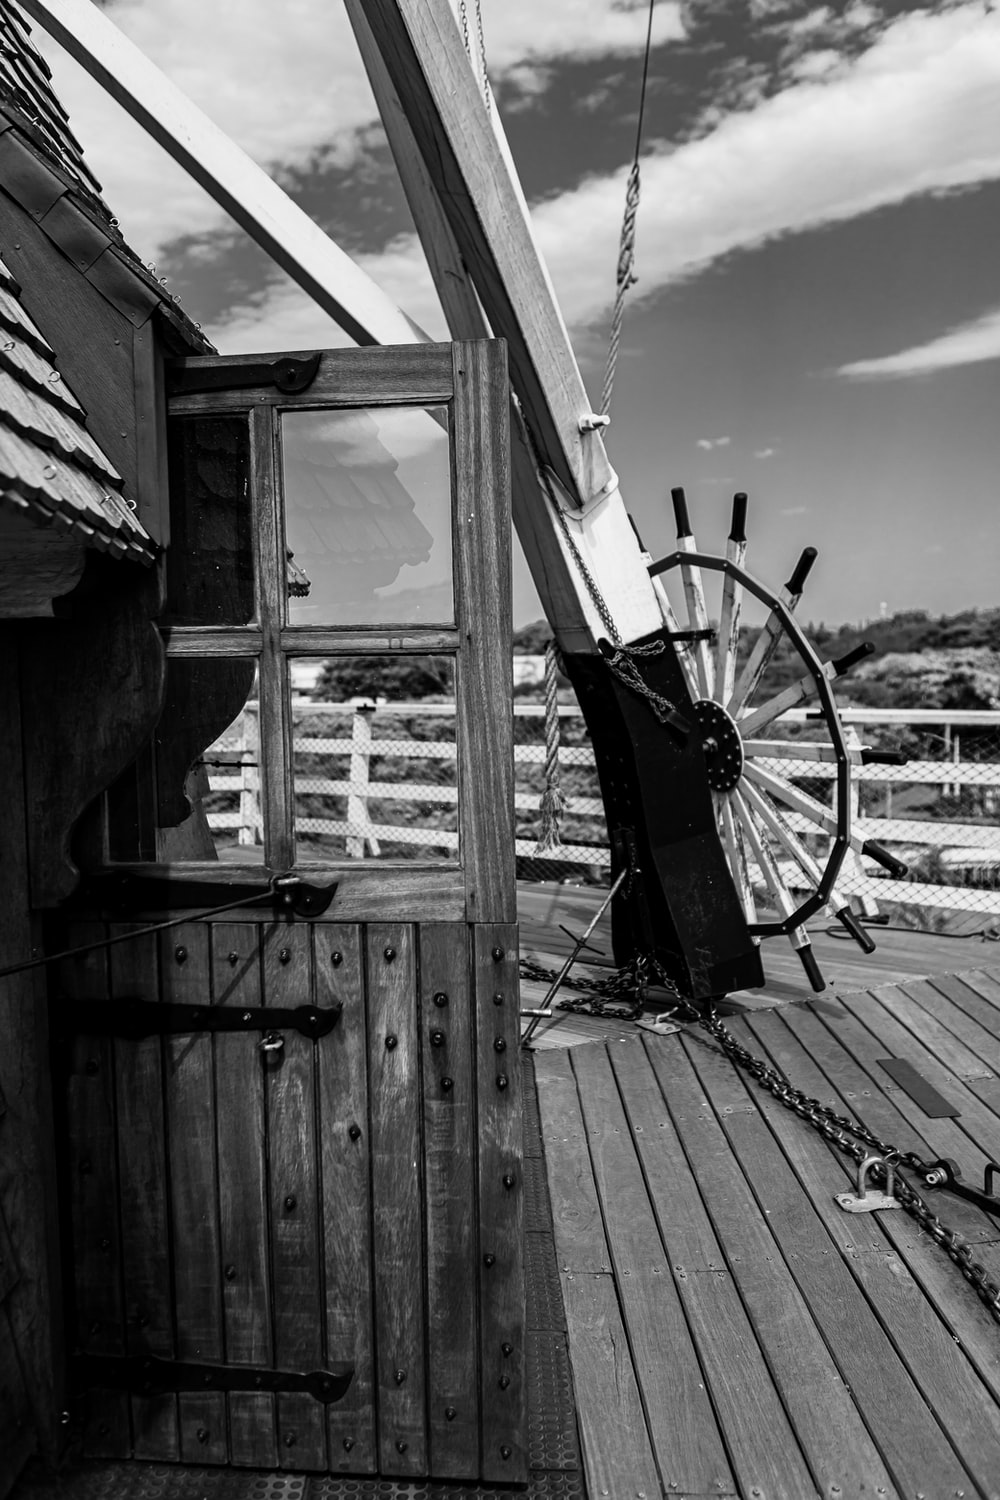 grayscale photo of a man in a wooden house